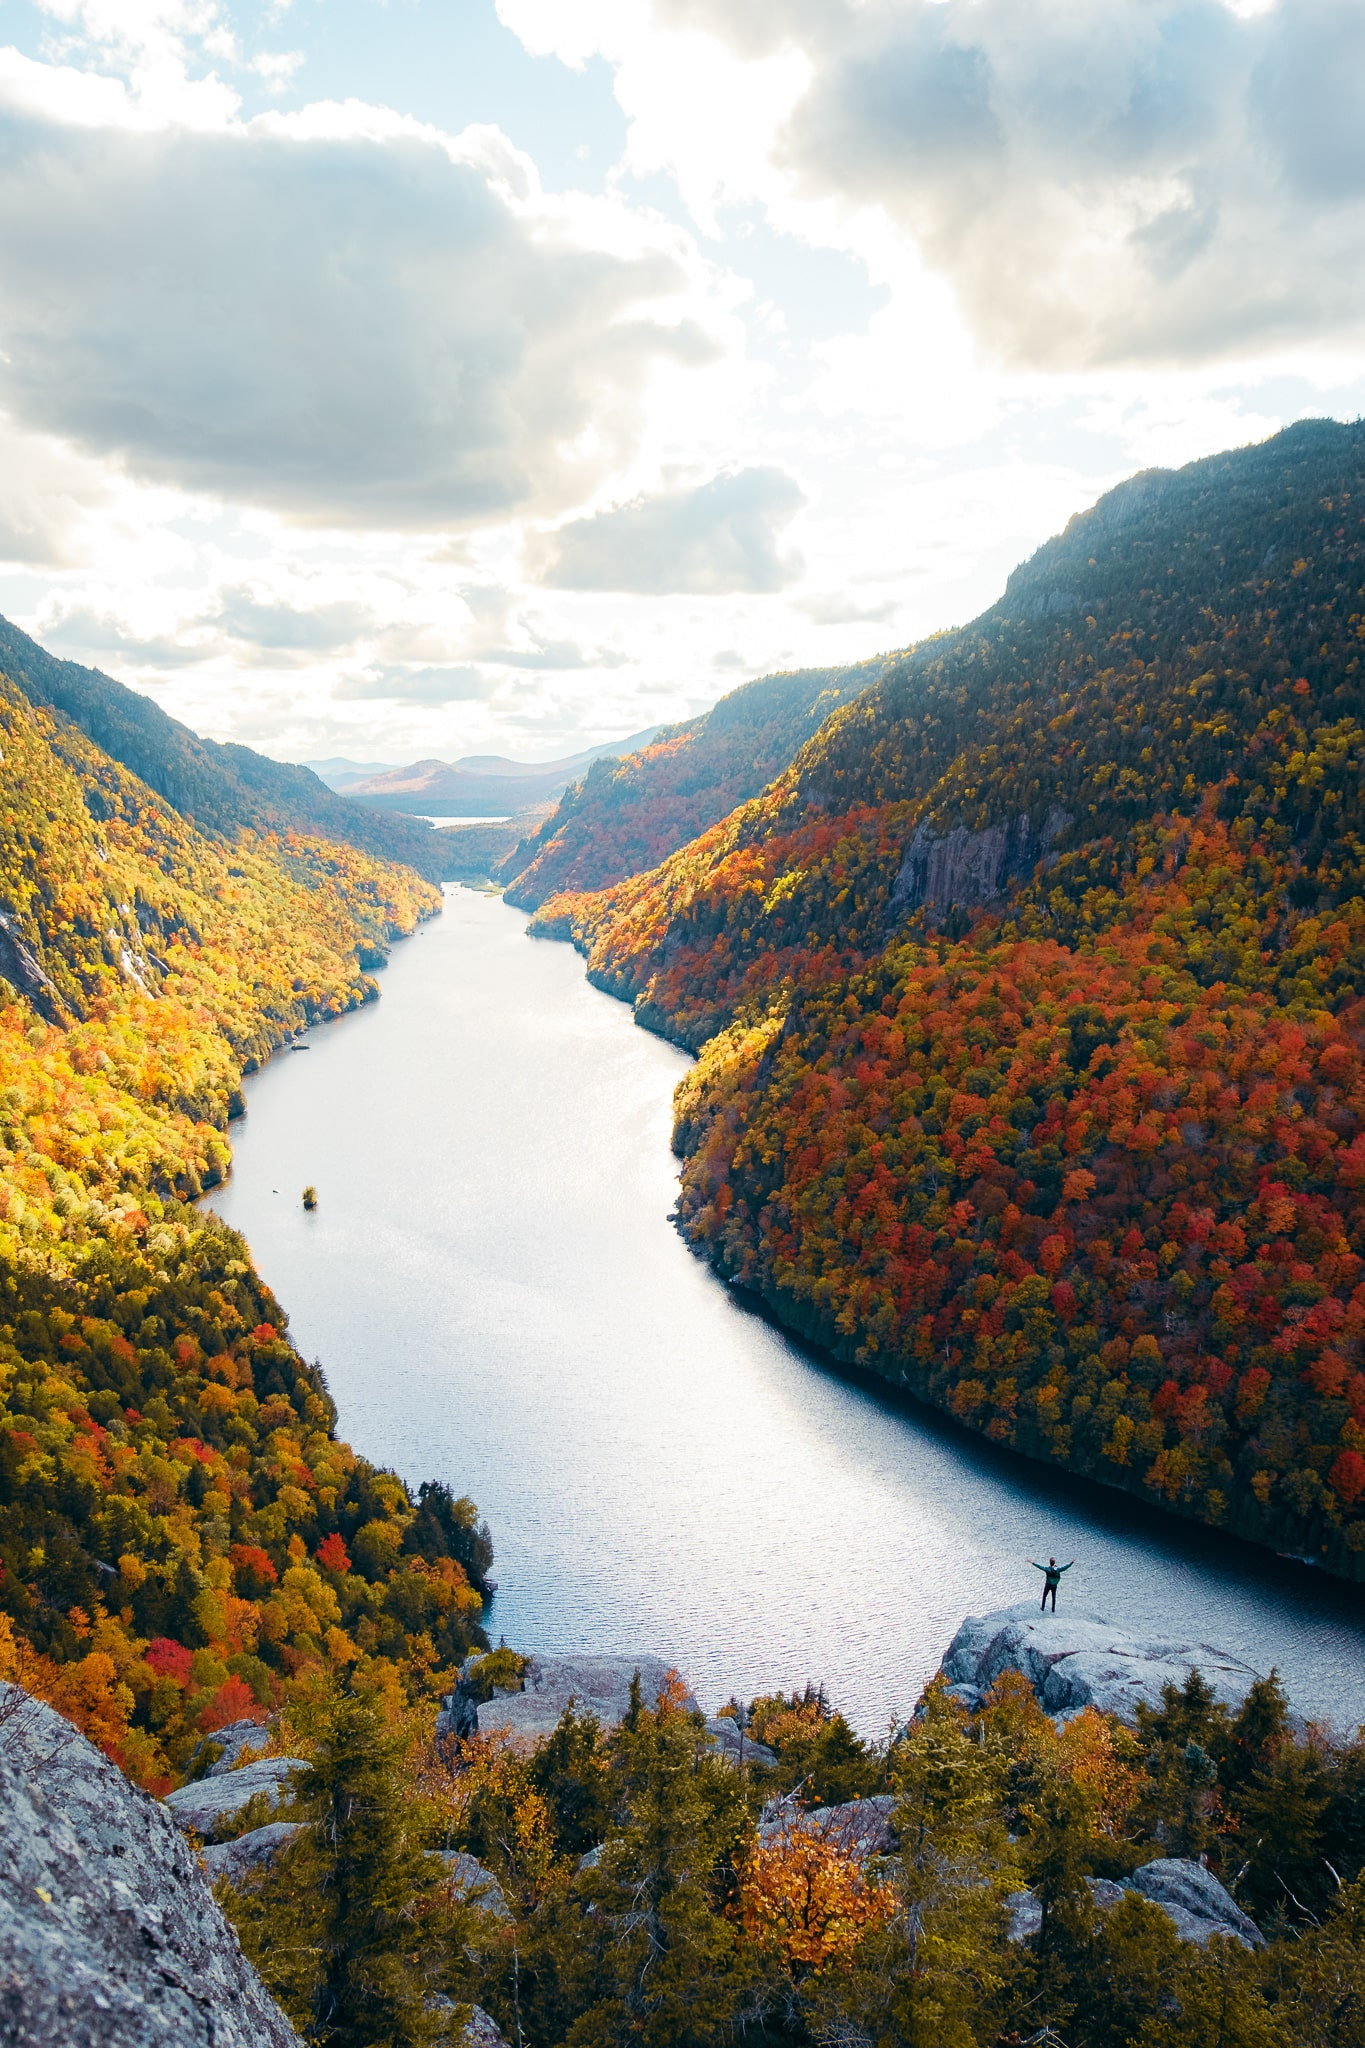 Indian Head during the fall in the Adirondacks, Upstate New York